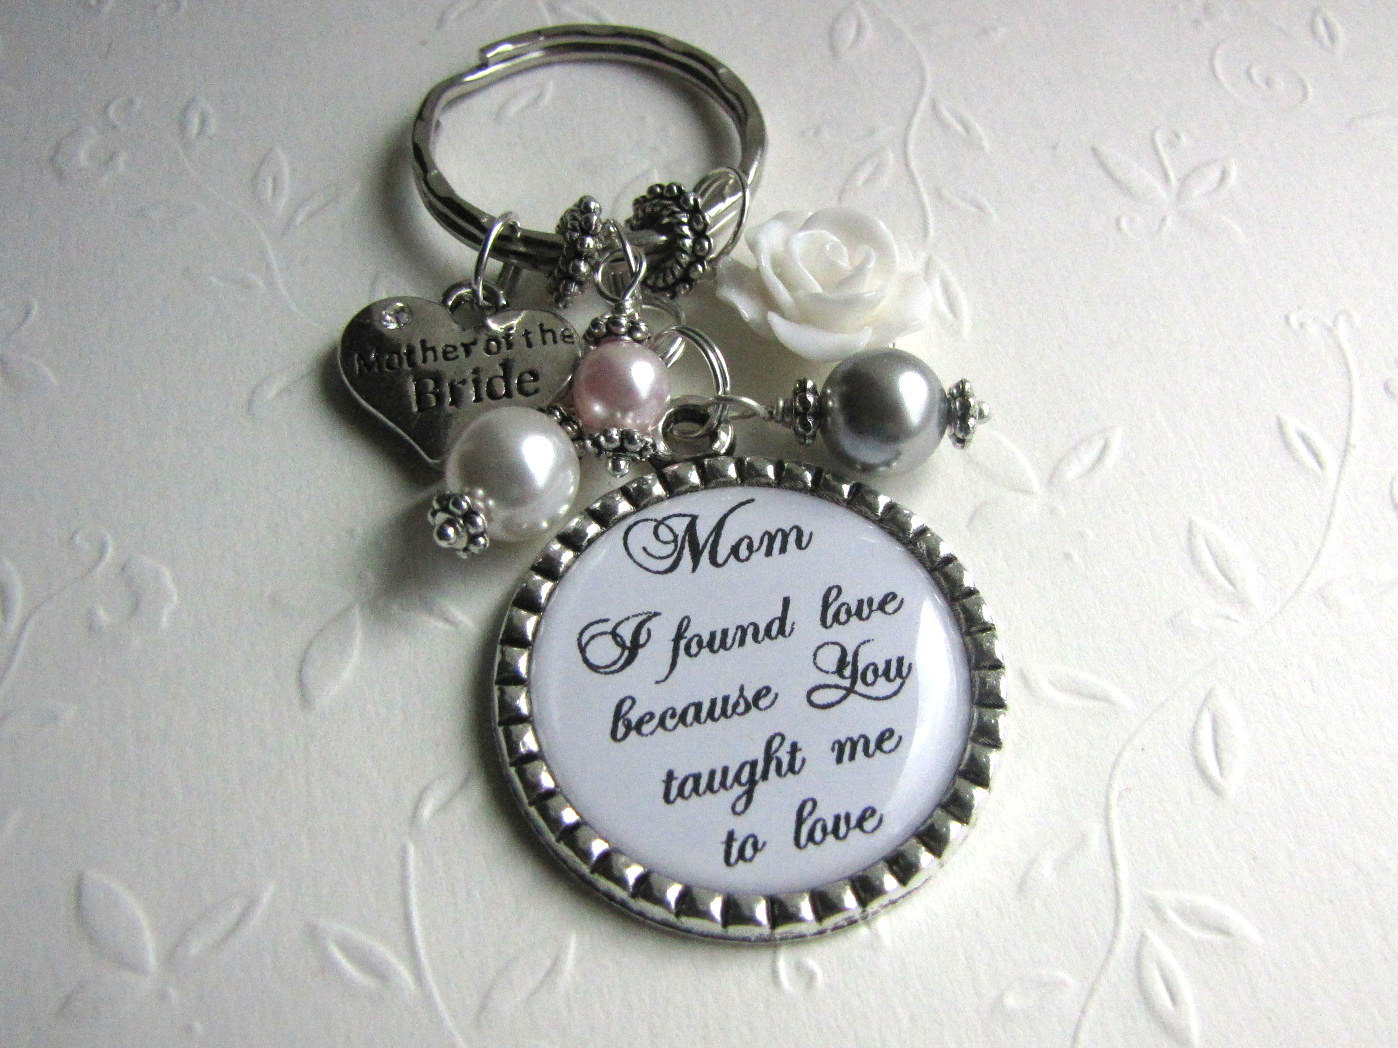 Father Daughter Wedding Gifts: Wedding Gift For Mom Mother-of-the-Bride Gift From Daughter